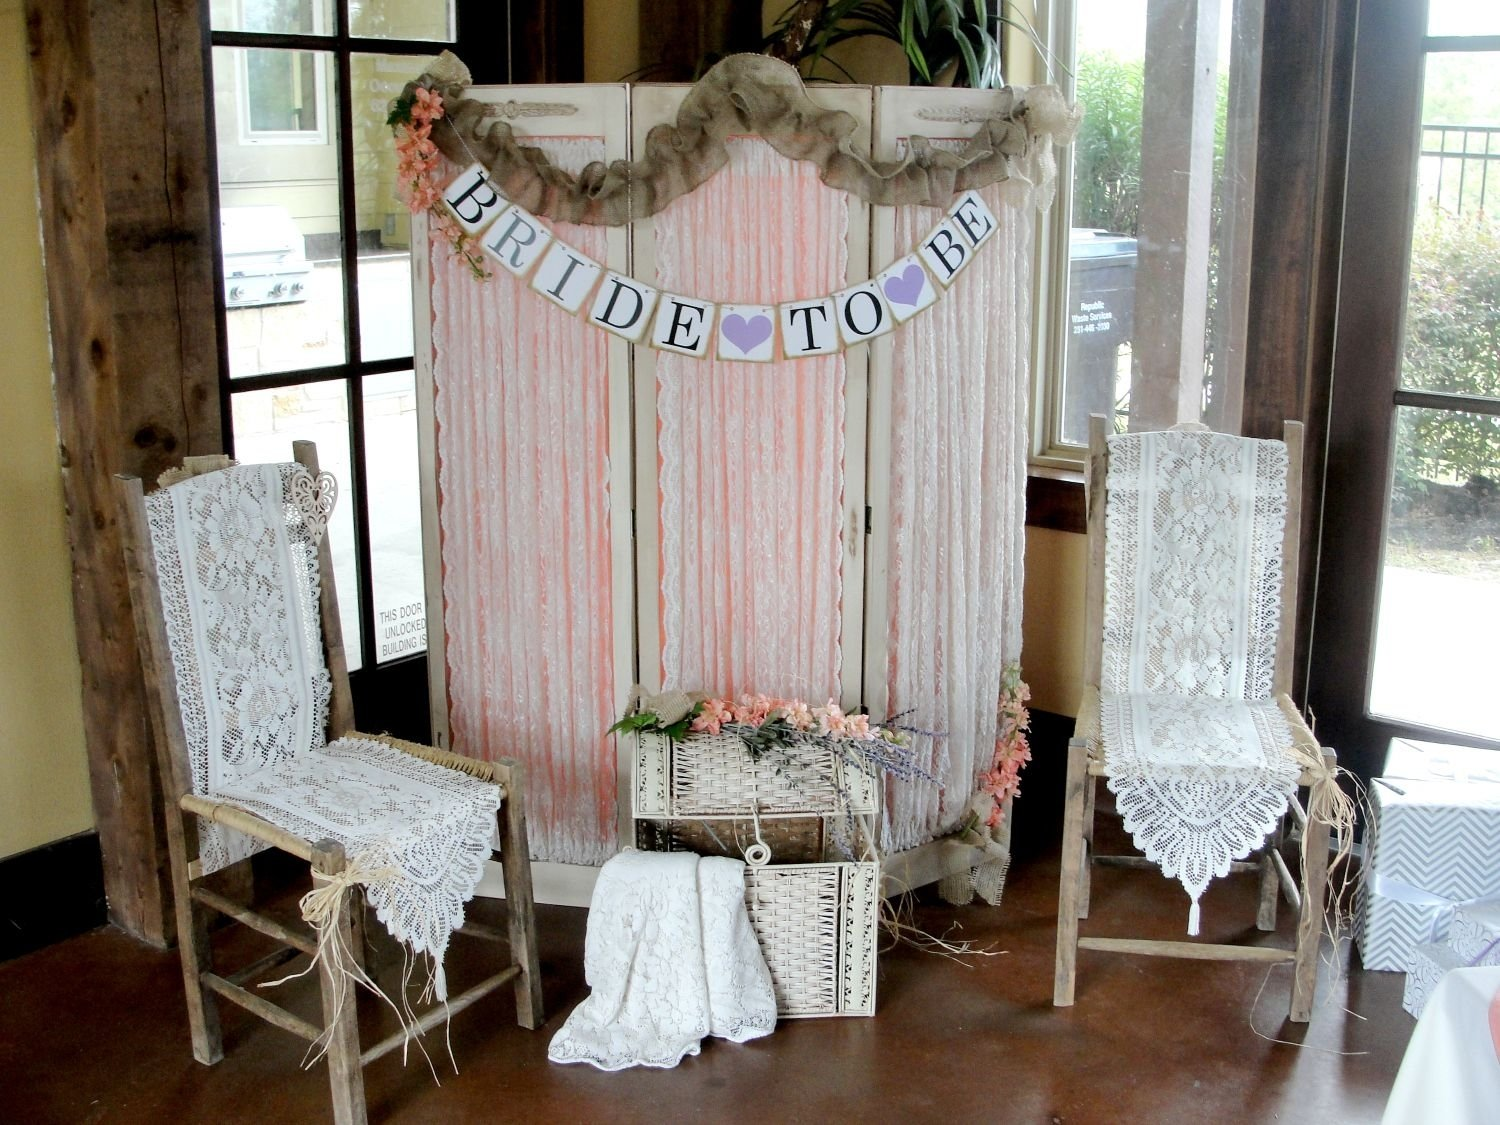 10 Most Recommended Bridal Shower Decoration Ideas Diy bridal shower ideas bridal showers pinterest bridal showers